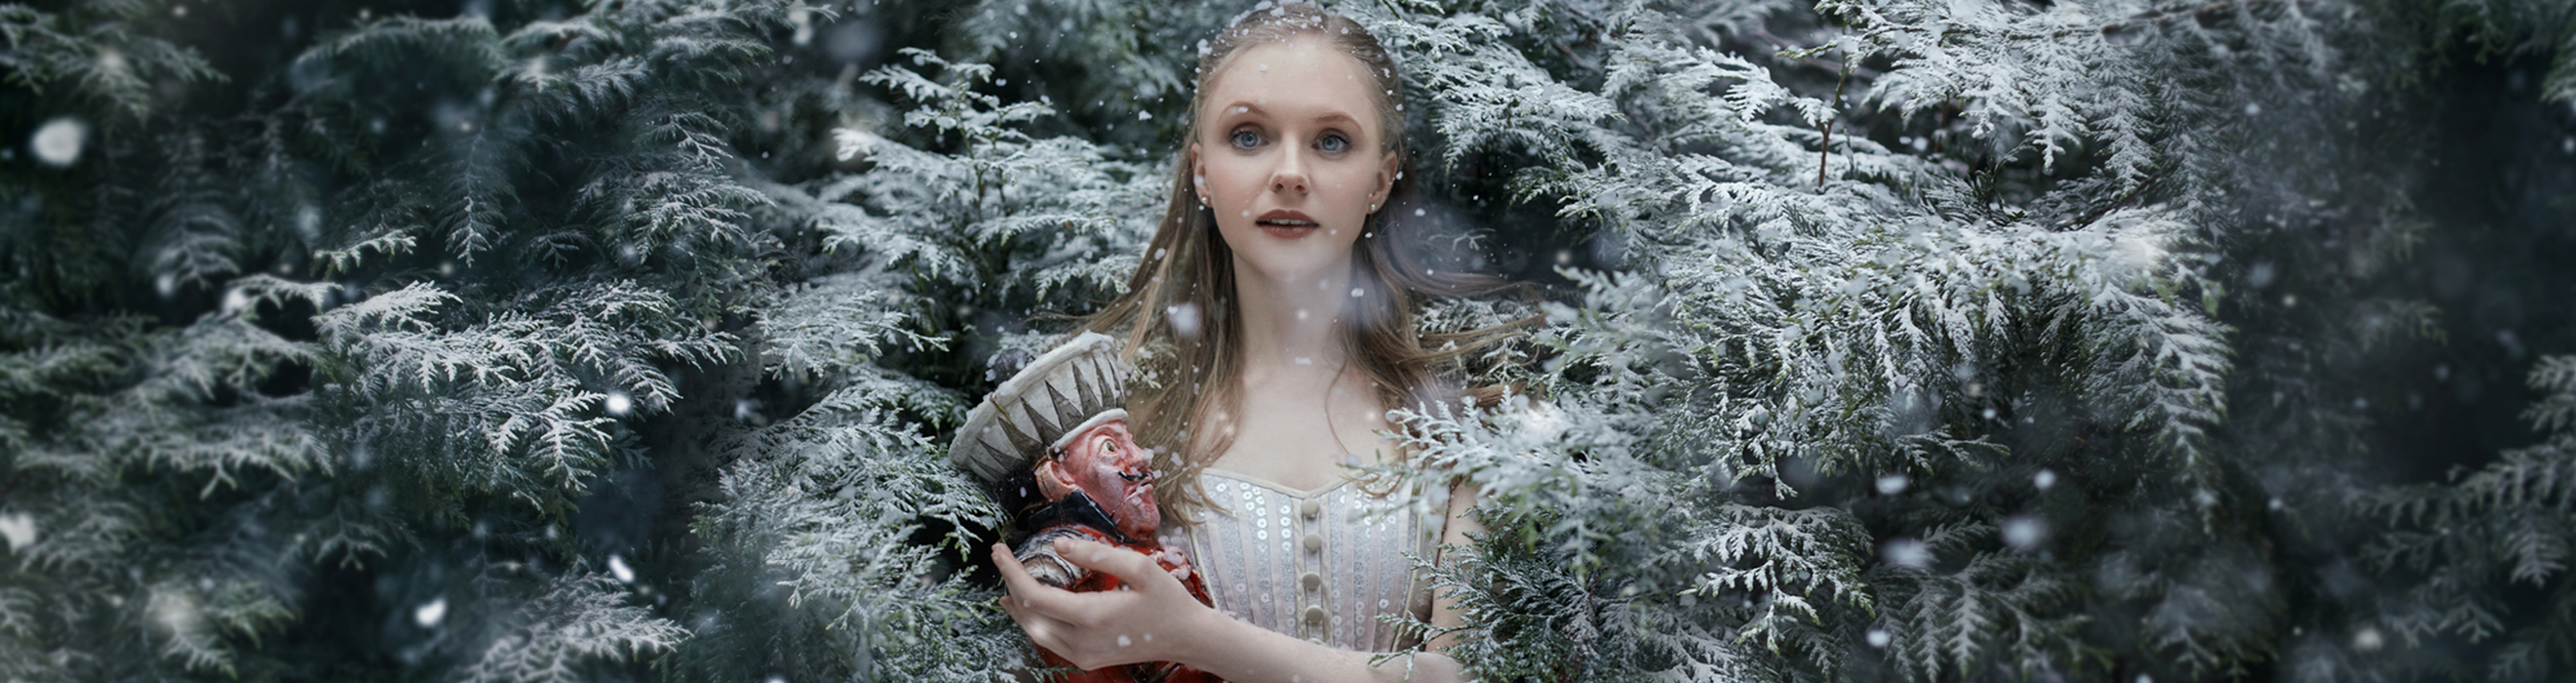 Brb Website Hero Image Nutcracker 2018